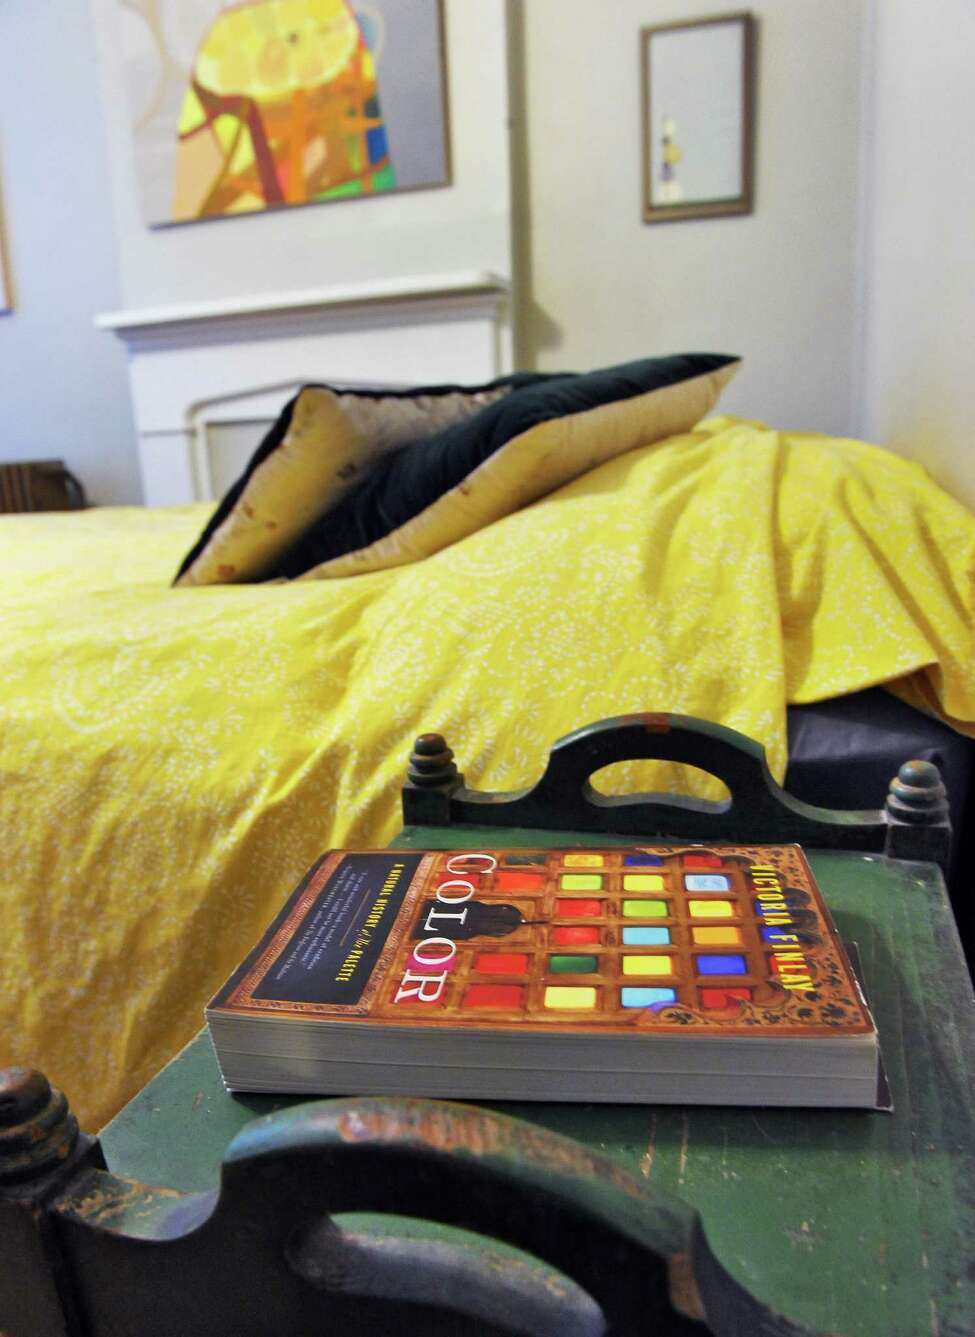 Night stand in the master bedroom of artist Jenny Kemp's 1842 row house Tuesday April 5, 2016 in Troy, NY. (John Carl D'Annibale / Times Union)